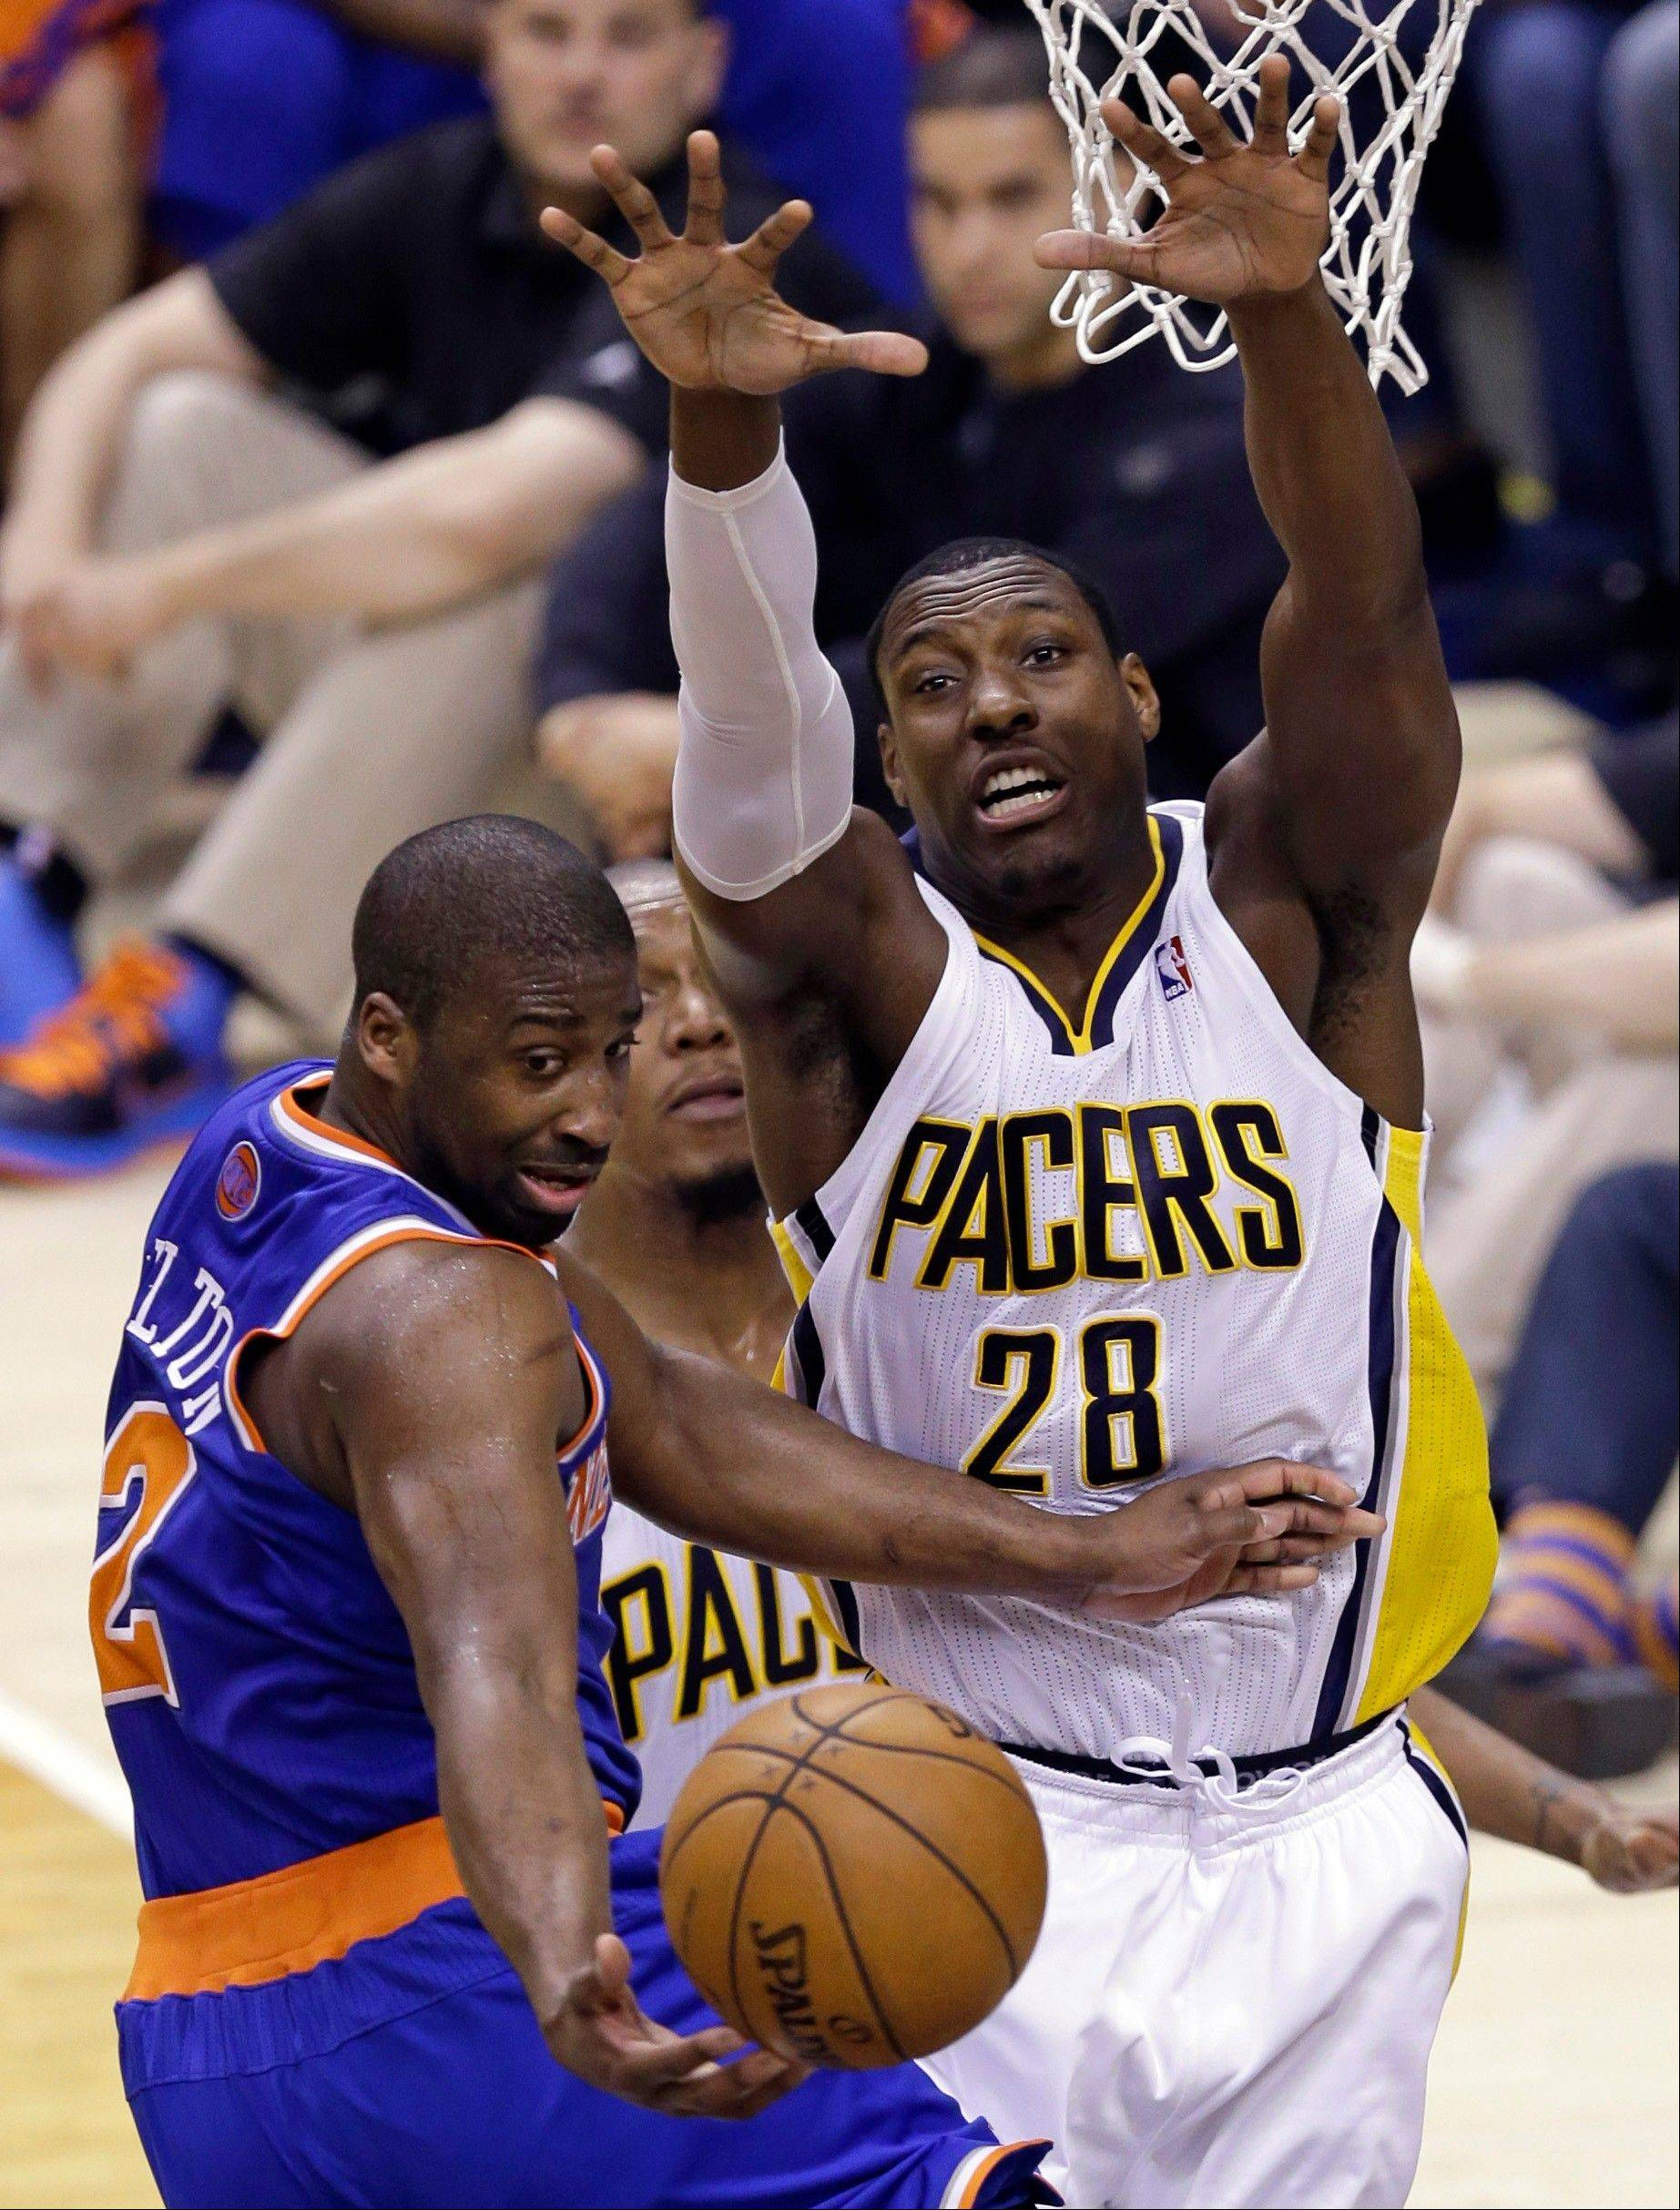 Indiana Pacers center Ian Mahinmi (28) forces New York Knicks guard Raymond Felton to pass on a drive to the basket during the first half of Game 4 of the Eastern Conference semifinal NBA basketball playoff series, in Indianapolis on Tuesday, May 14, 2013.